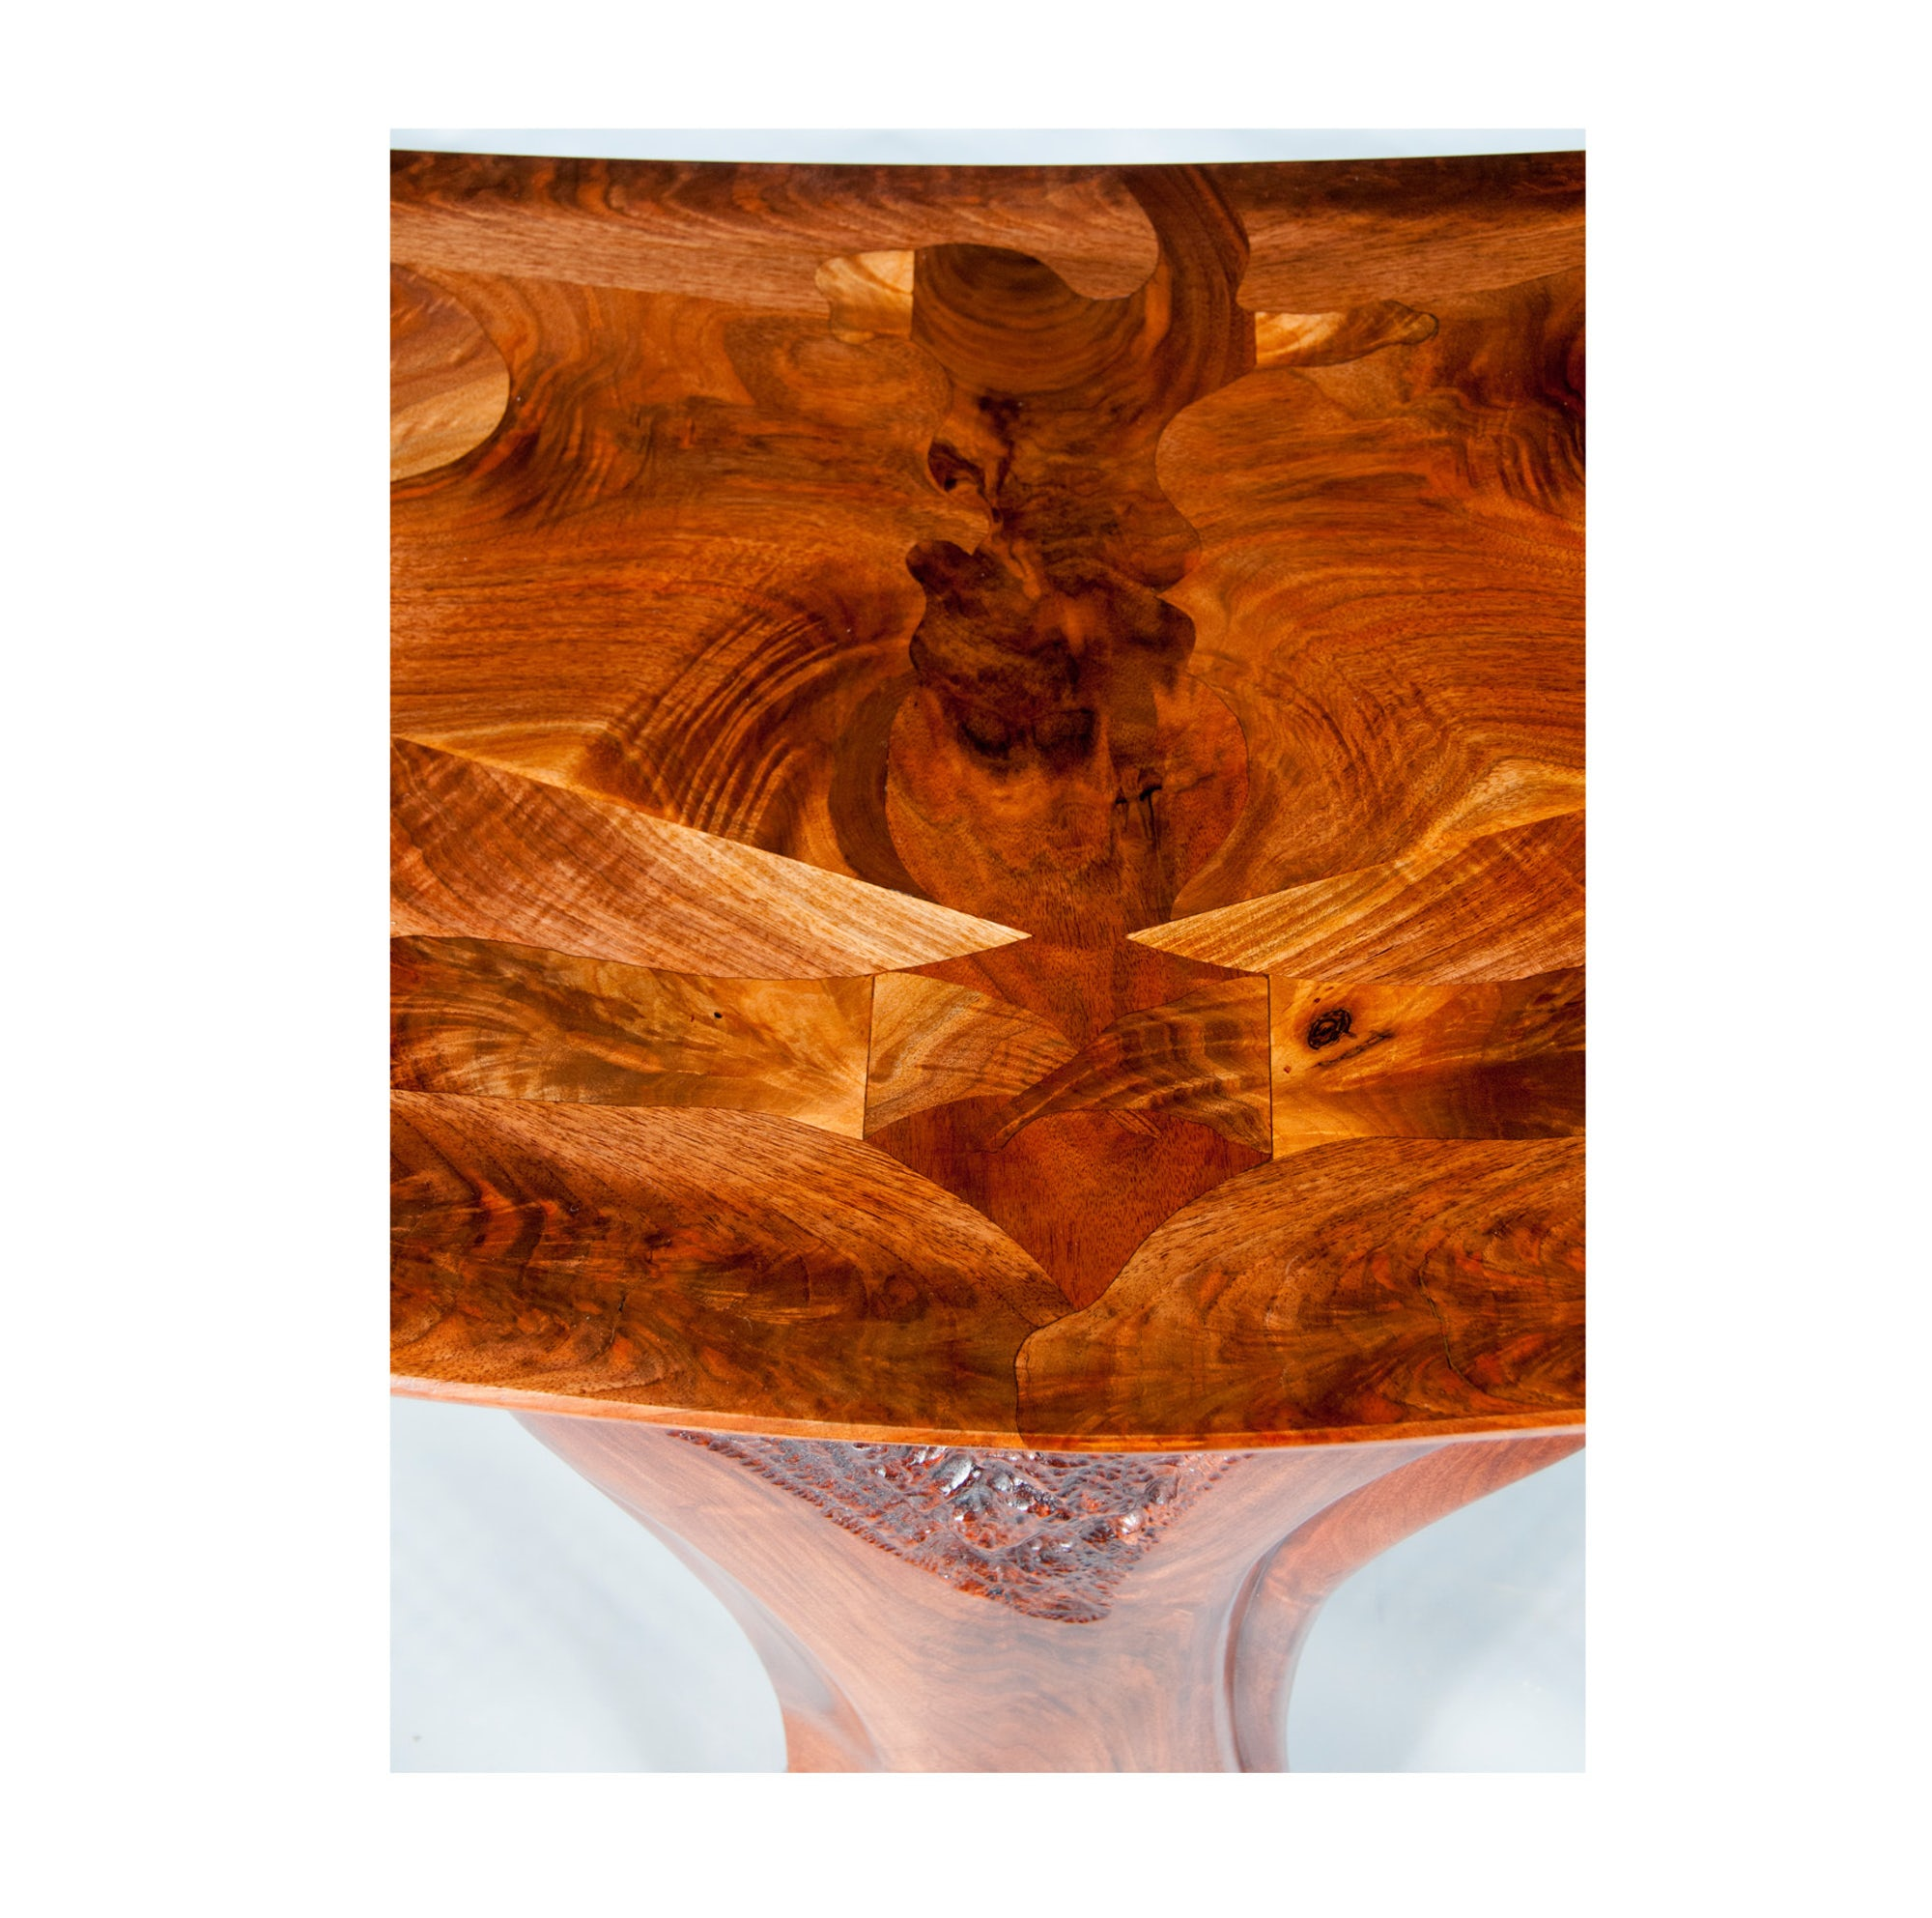 Image 3: Abstract Organic Expressionism in Furniture™ Coffee Table